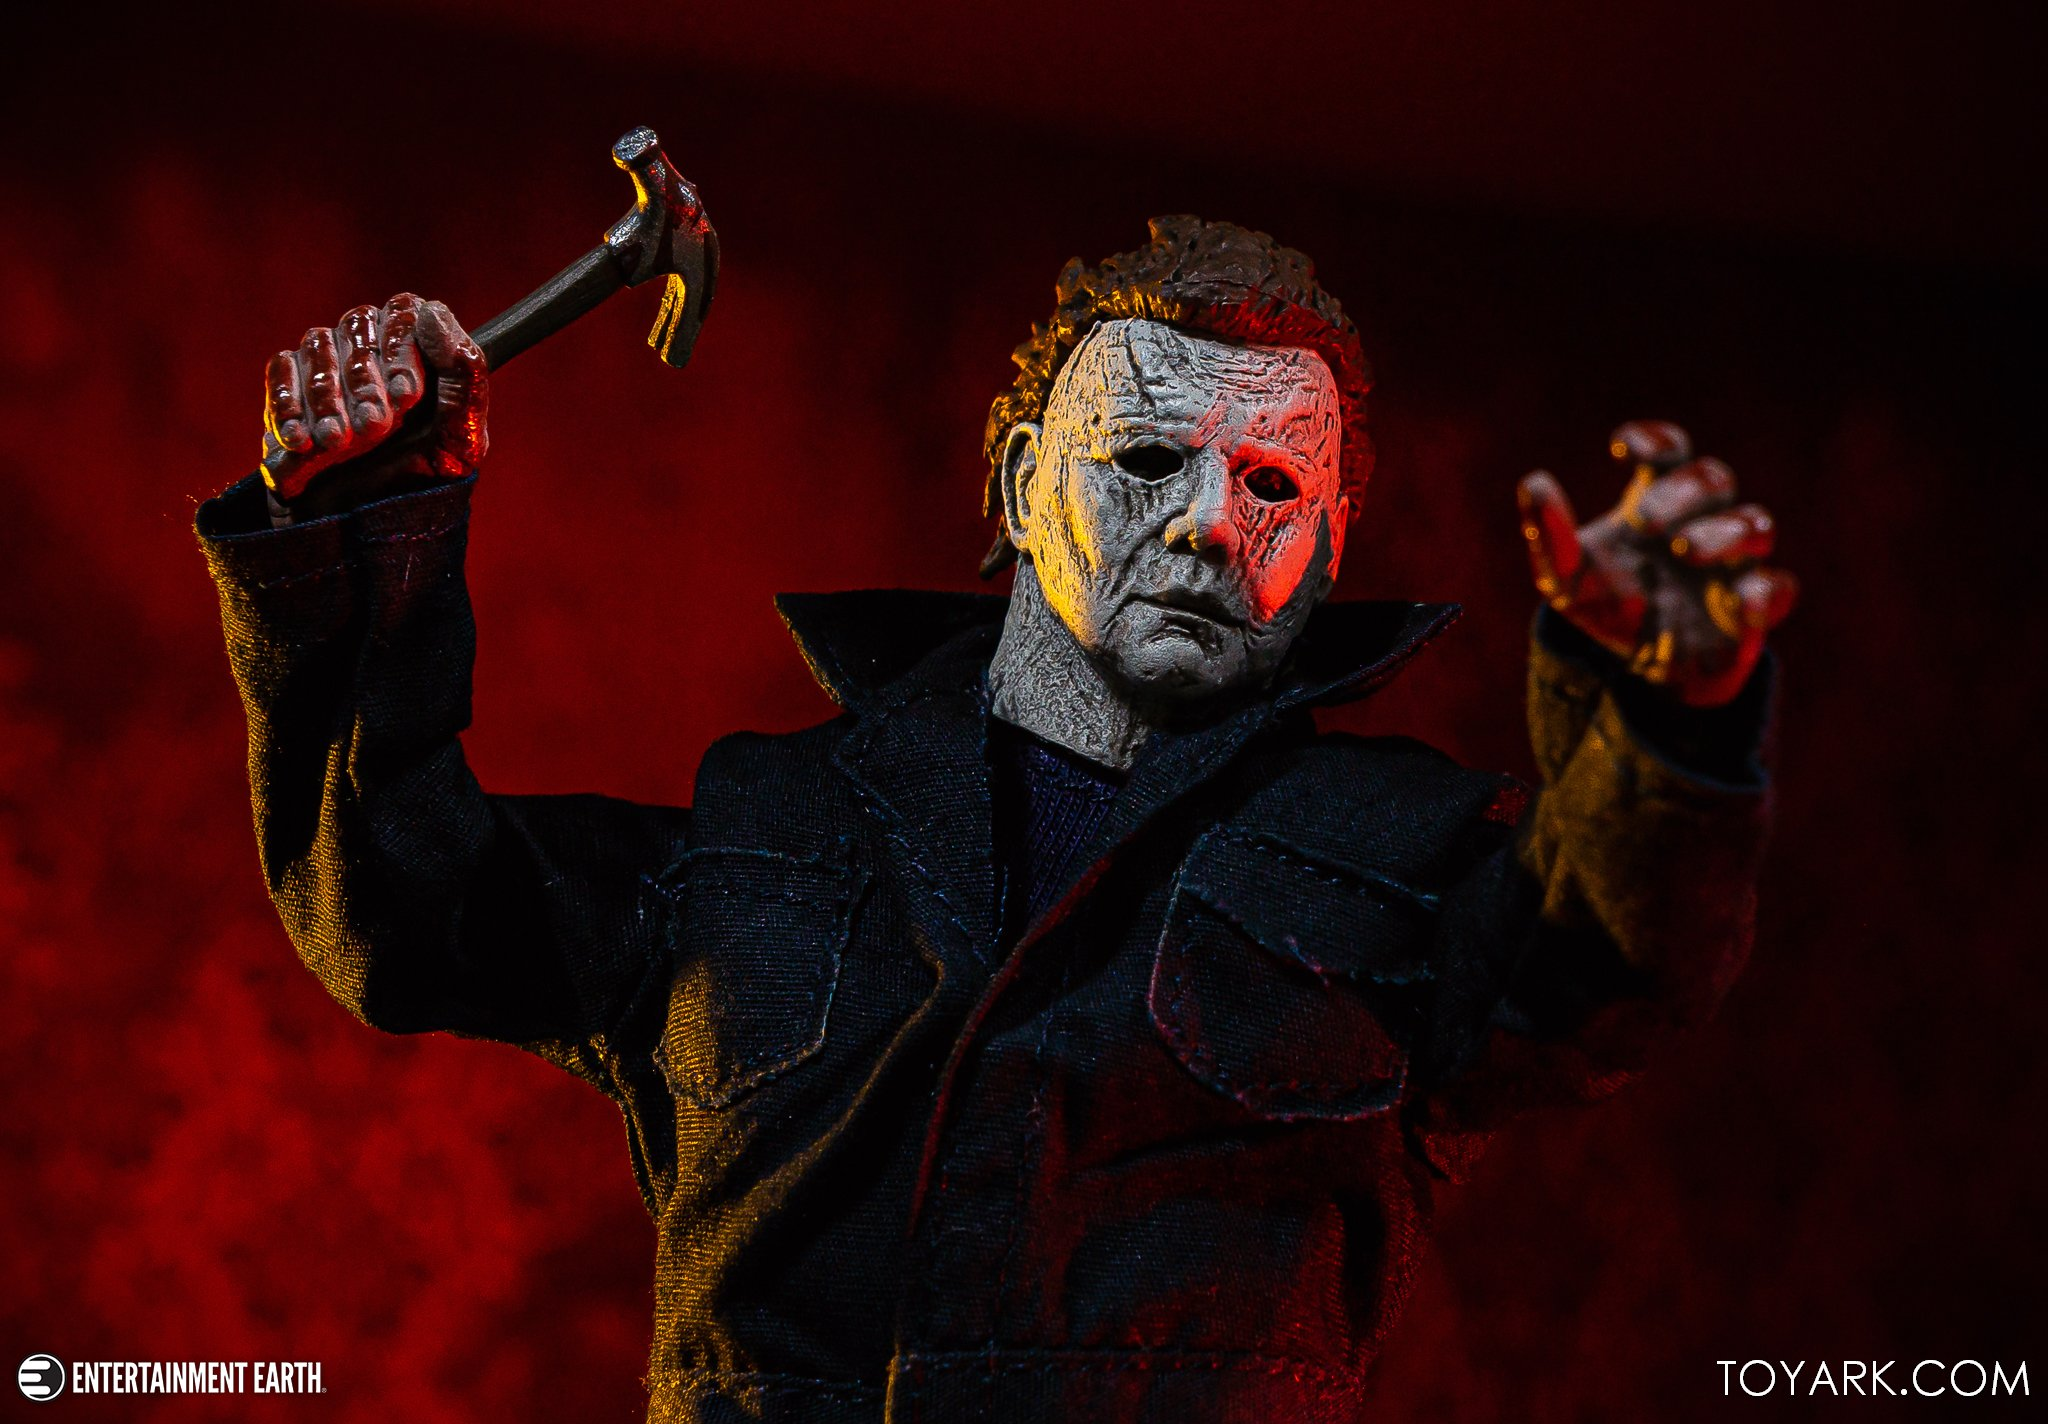 https://news.toyark.com/wp-content/uploads/sites/4/2020/01/Halloween-2018-Retro-Michael-Myers-021.jpg